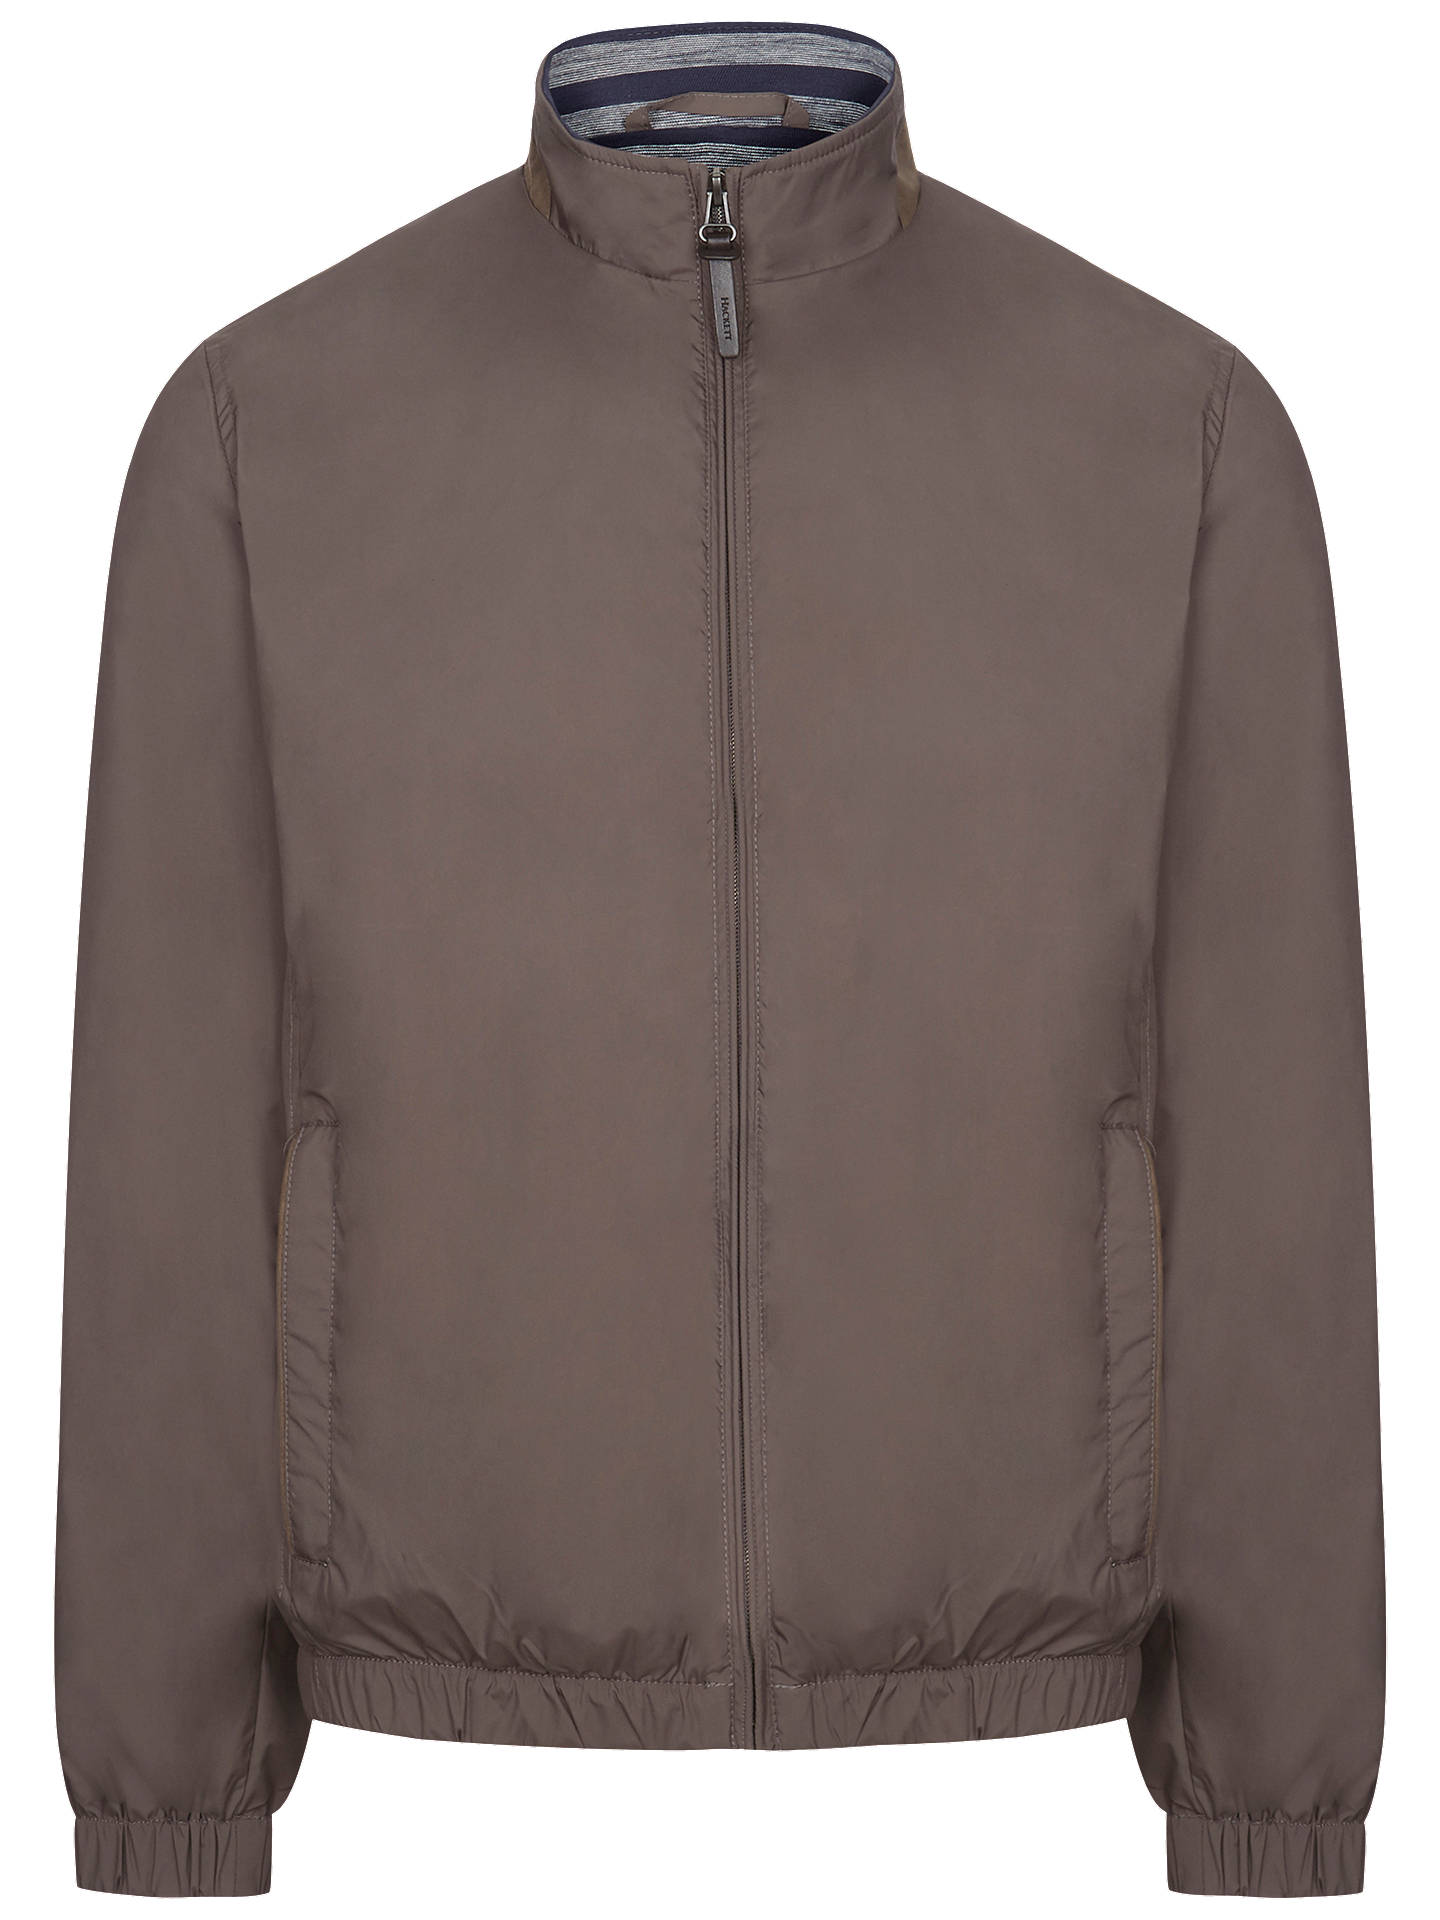 sells matching in colour street price Hackett London Casual Bomber Jacket at John Lewis & Partners